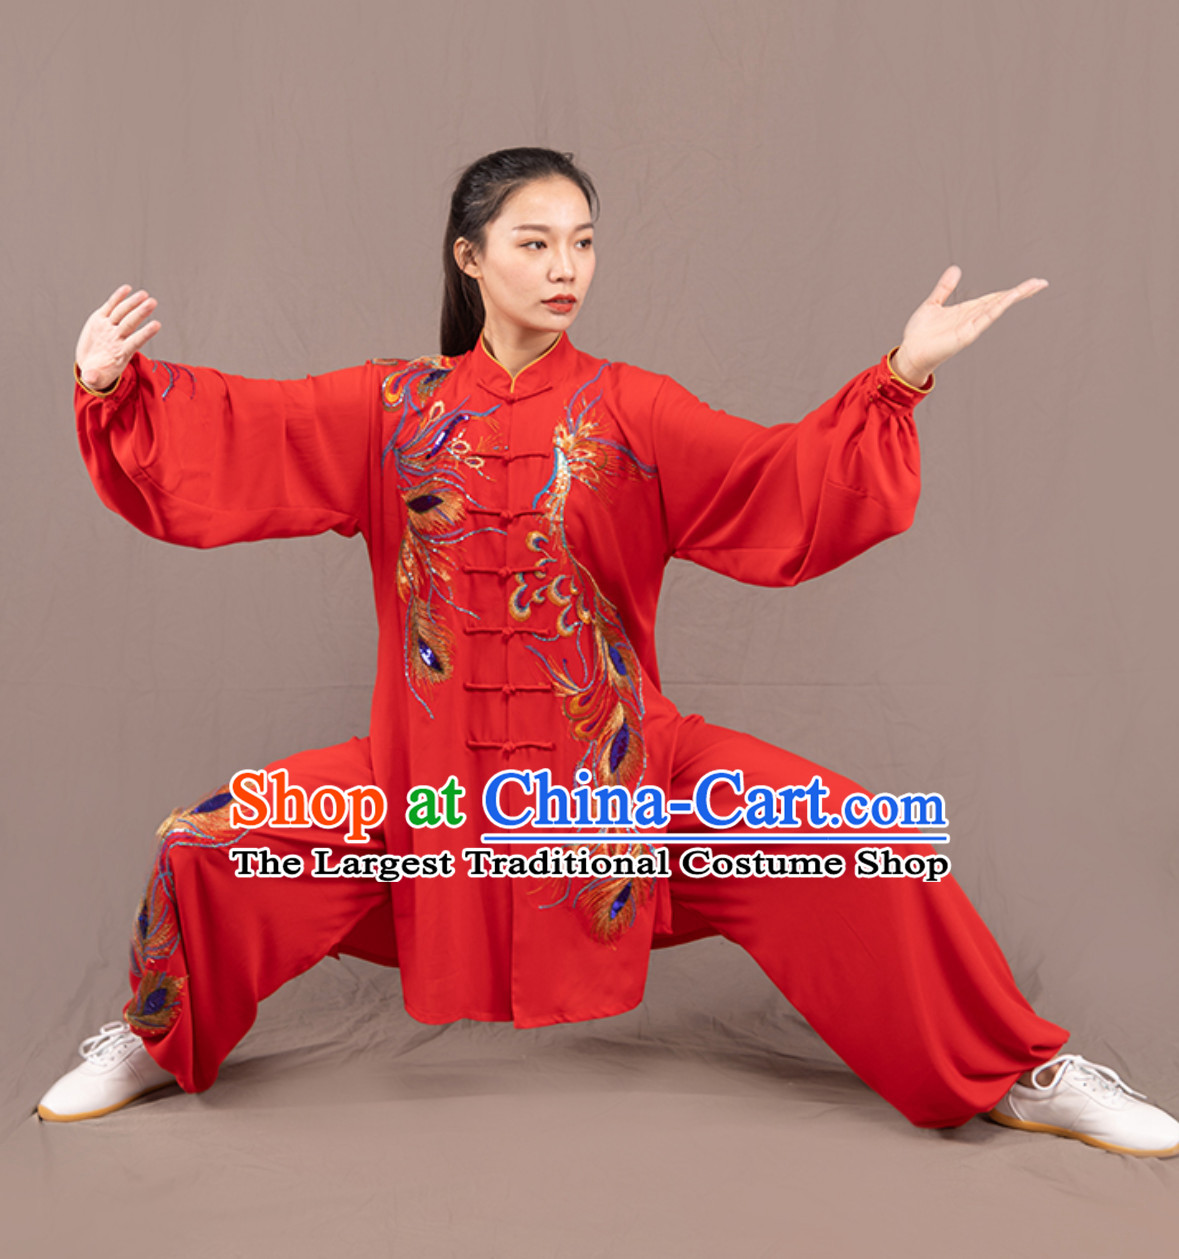 Top Chinese Traditional Competition Championship Professional Tai Chi Uniforms Taiji Kung Fu Wing Chun Kungfu Tai Ji Sword Gong Fu Master Clothing Suits Clothes Complete Set for Women